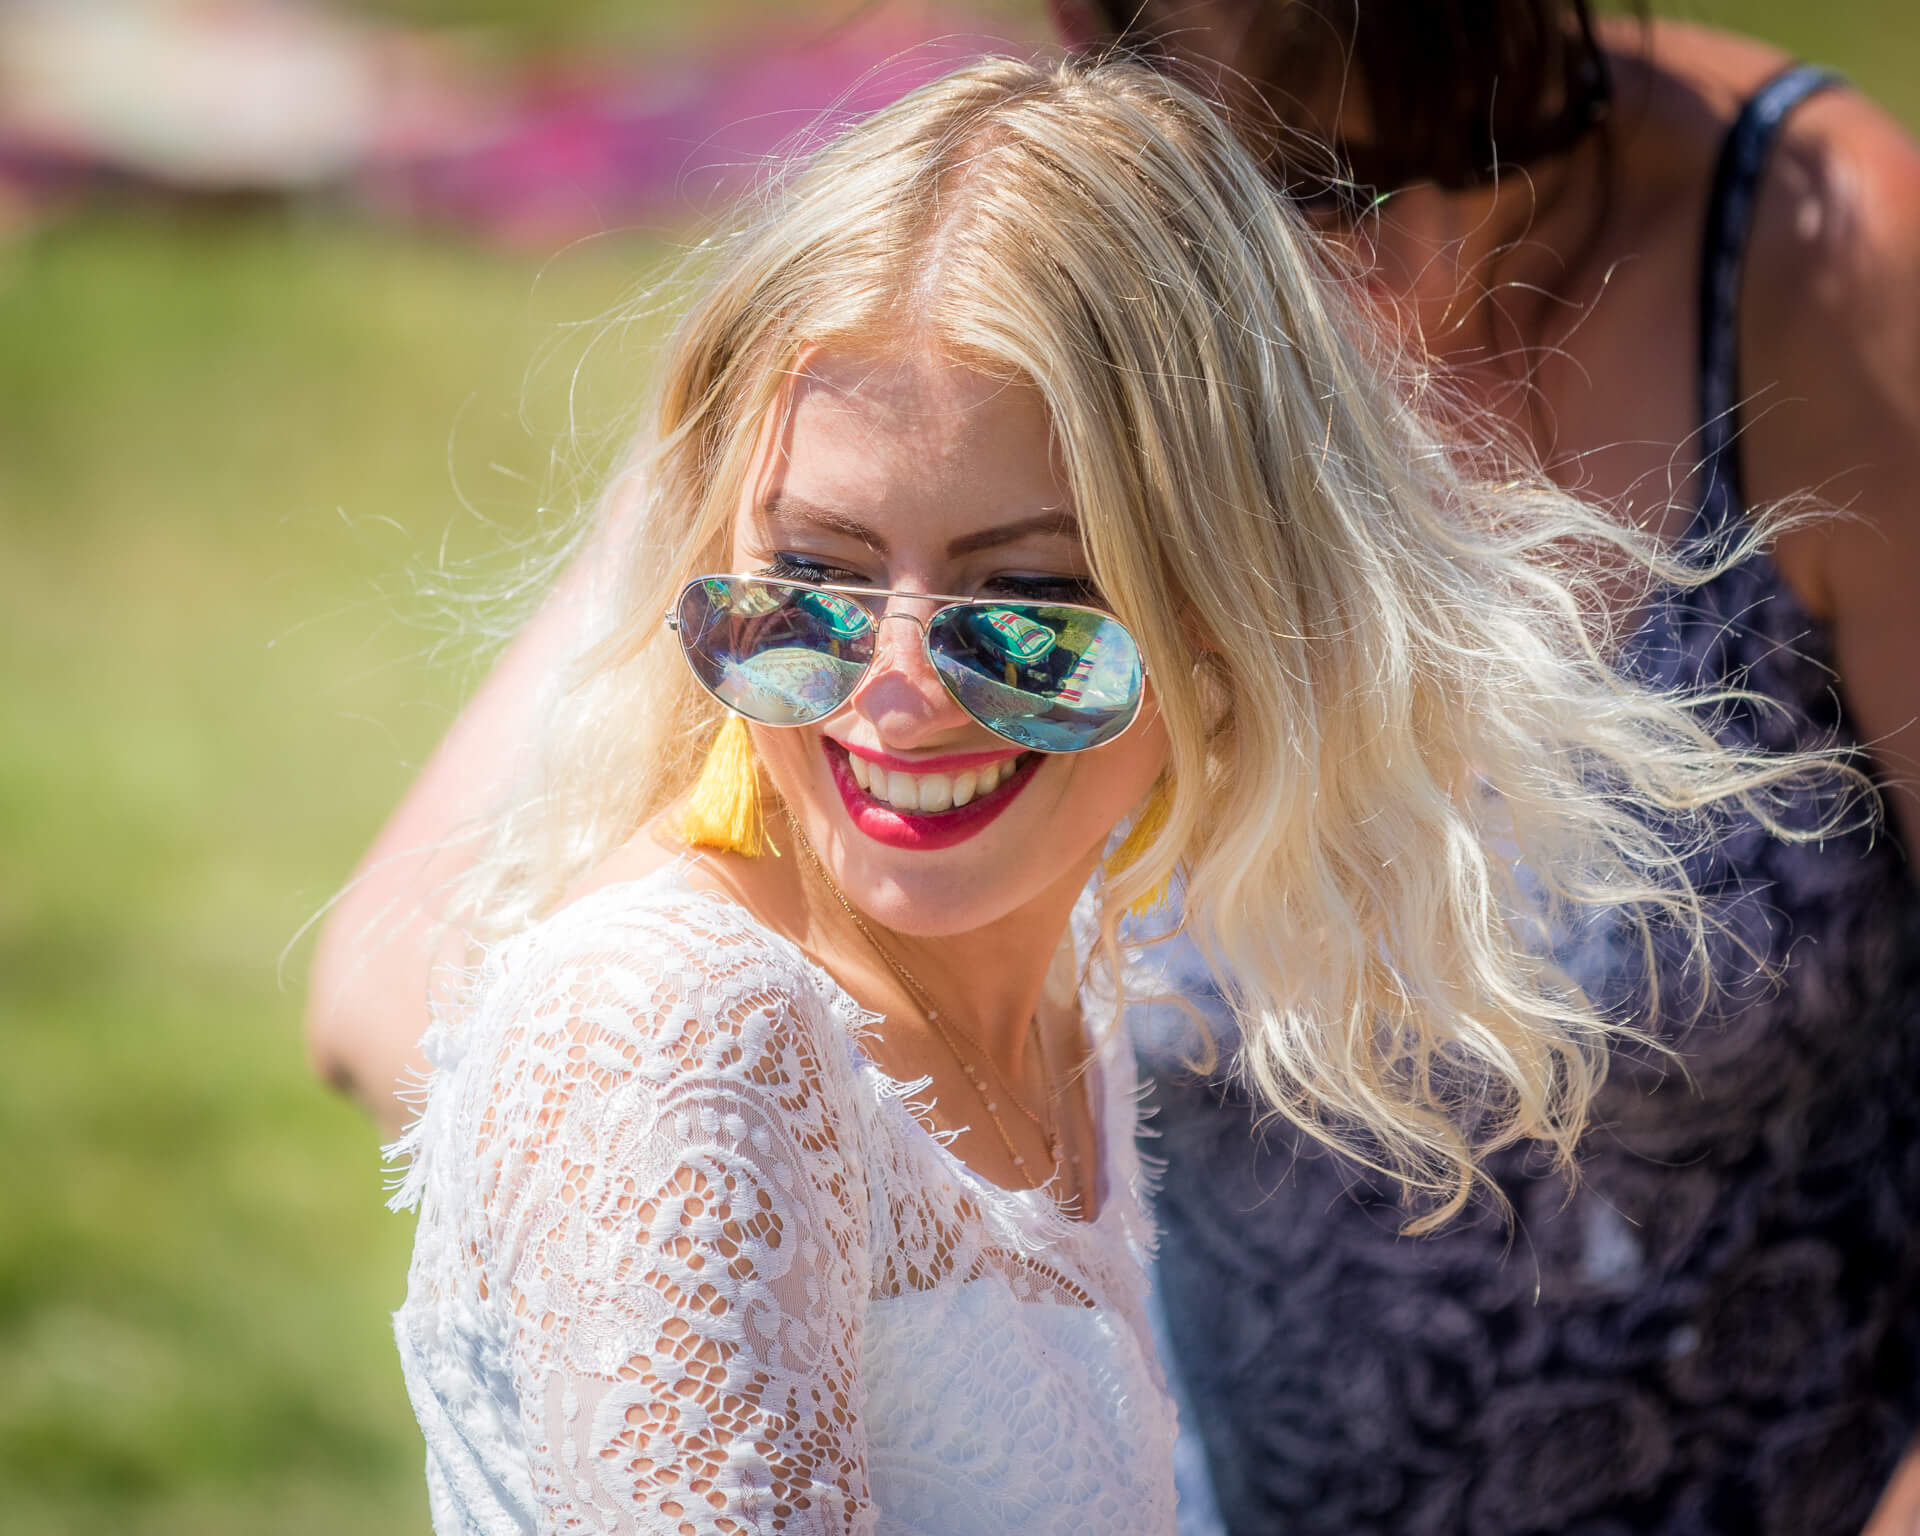 A female festival goer, seen in this chest up colour image, enjoying herself at Mantonfest in 2018. She is slim, she has shoulder length blonde hair, and wears a lightweight white summer top. She has wears a pair of 'aviator' style sunglasses, which are perched halfway down her nose, and bright red lipstick.